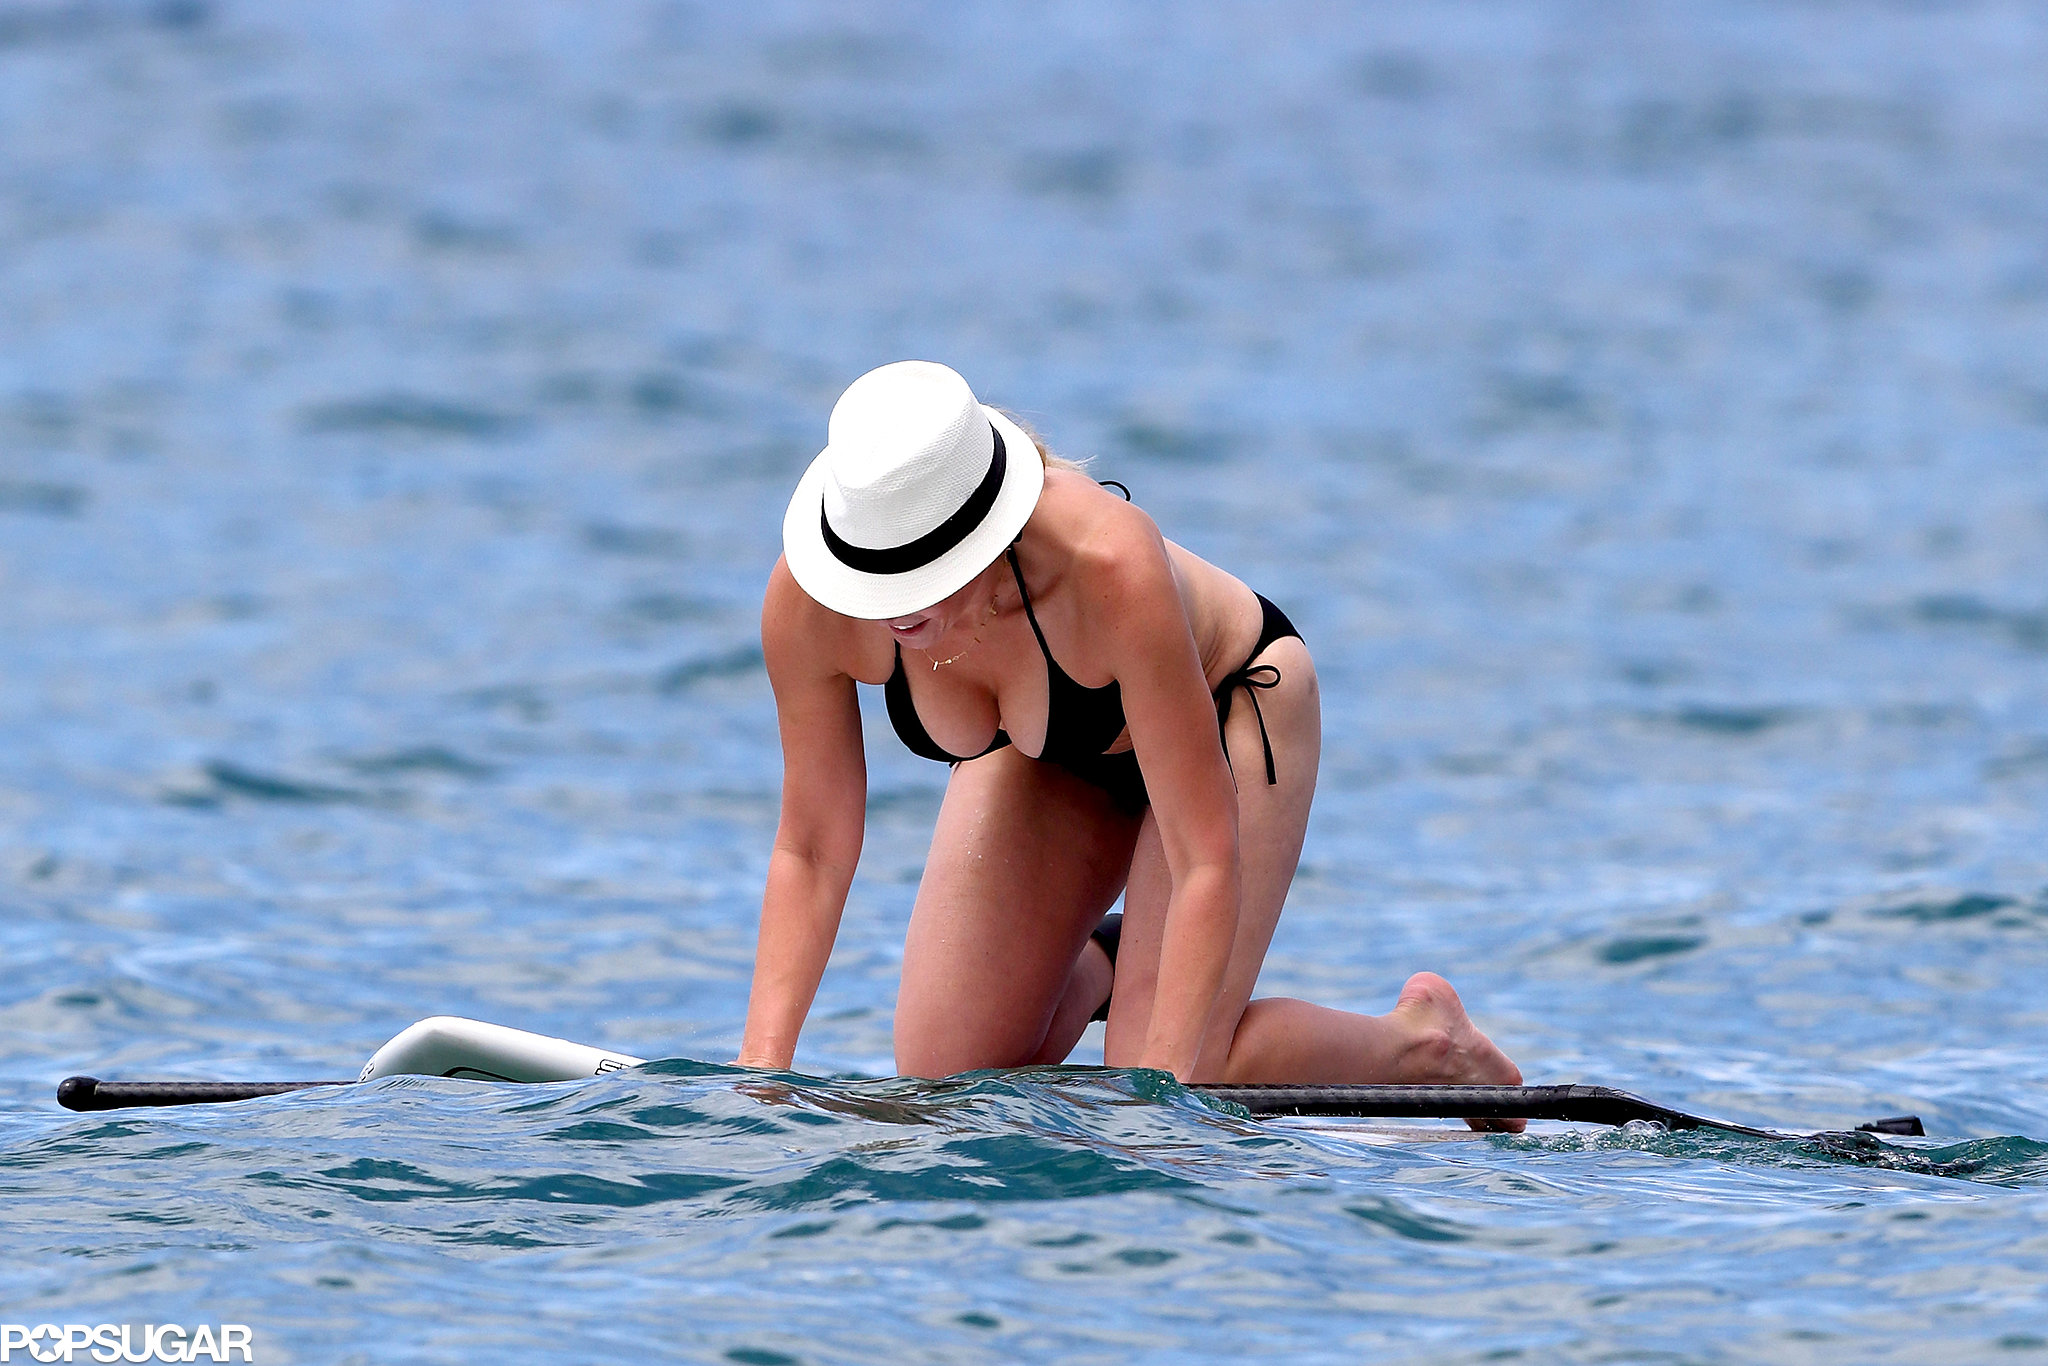 Chelsea Handler donned a black bikini during her vacation.